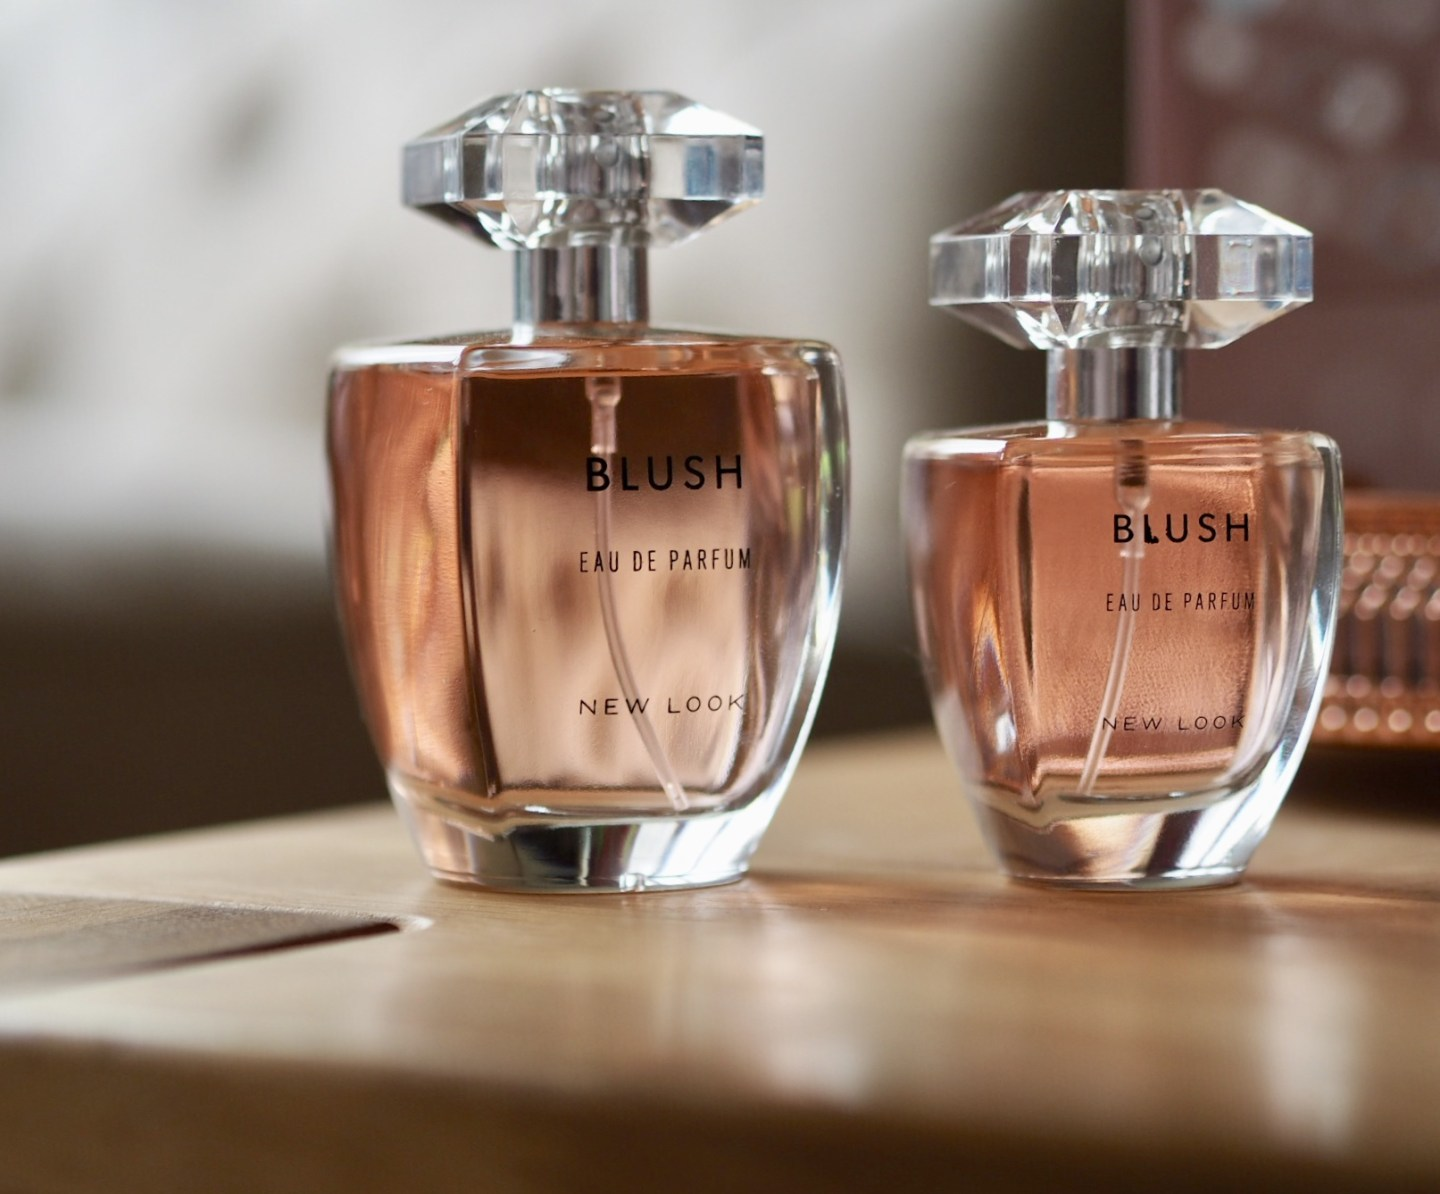 New Look Blush Eau de Parfum